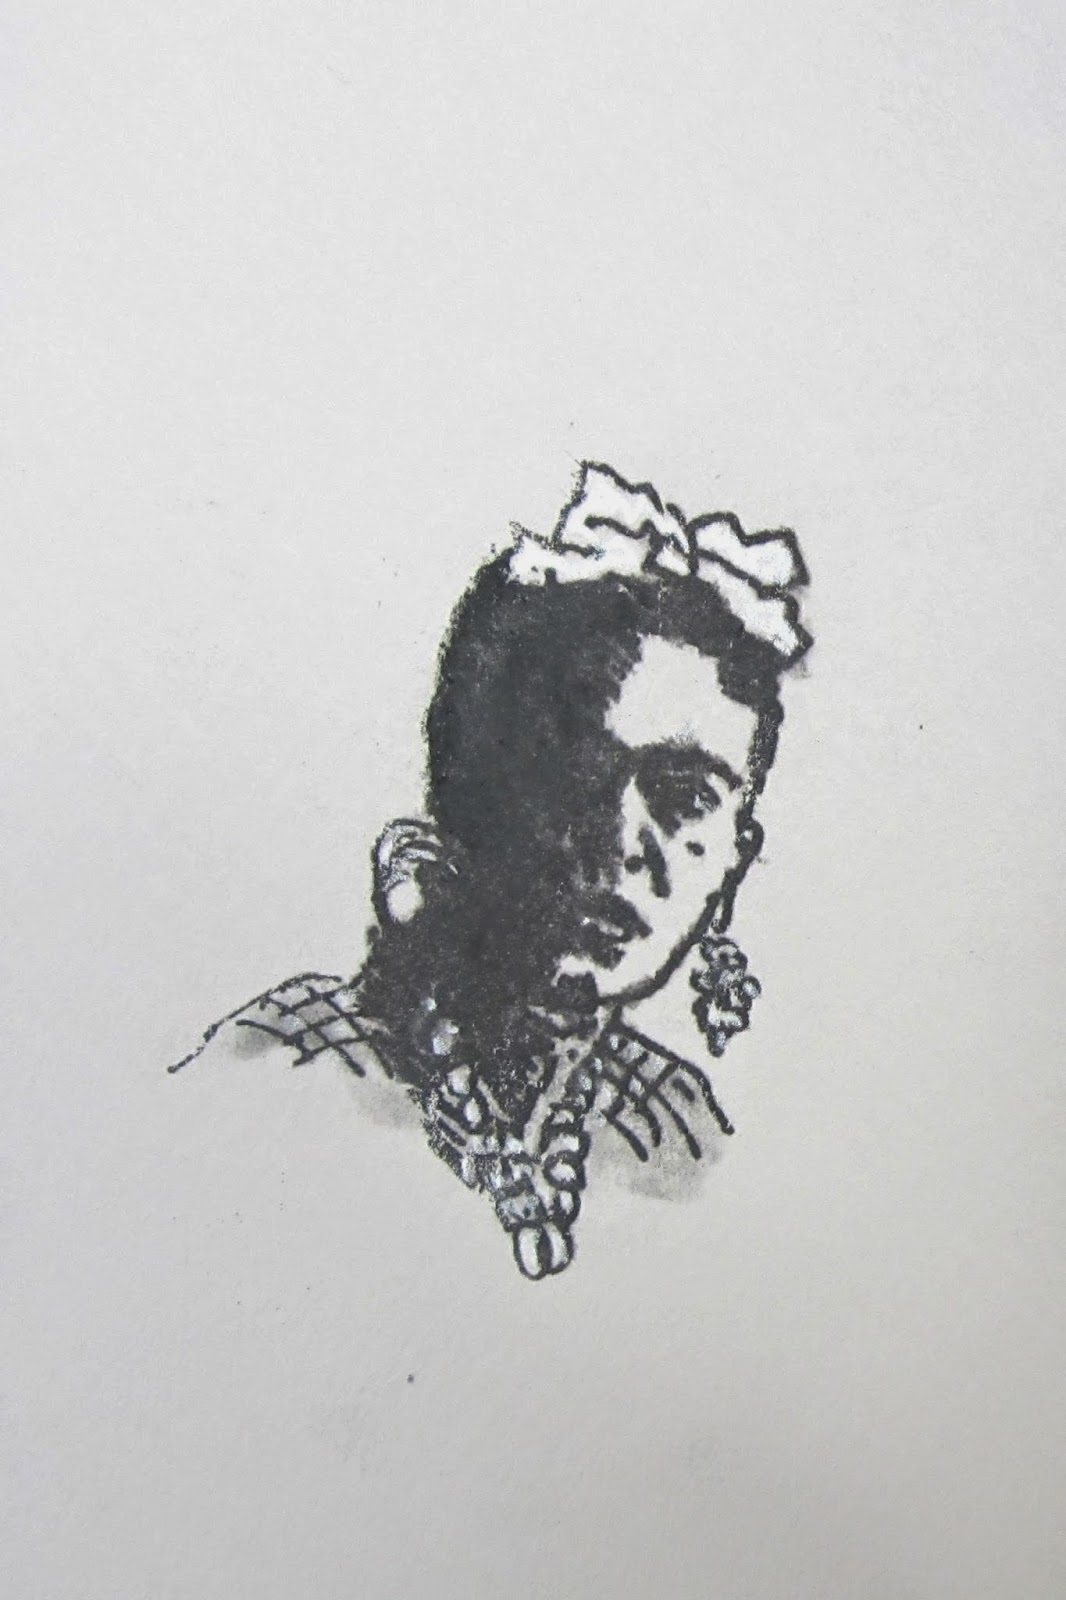 La Frida II Etching, 3x3 inches c. 1979 by F. Lennox Campello